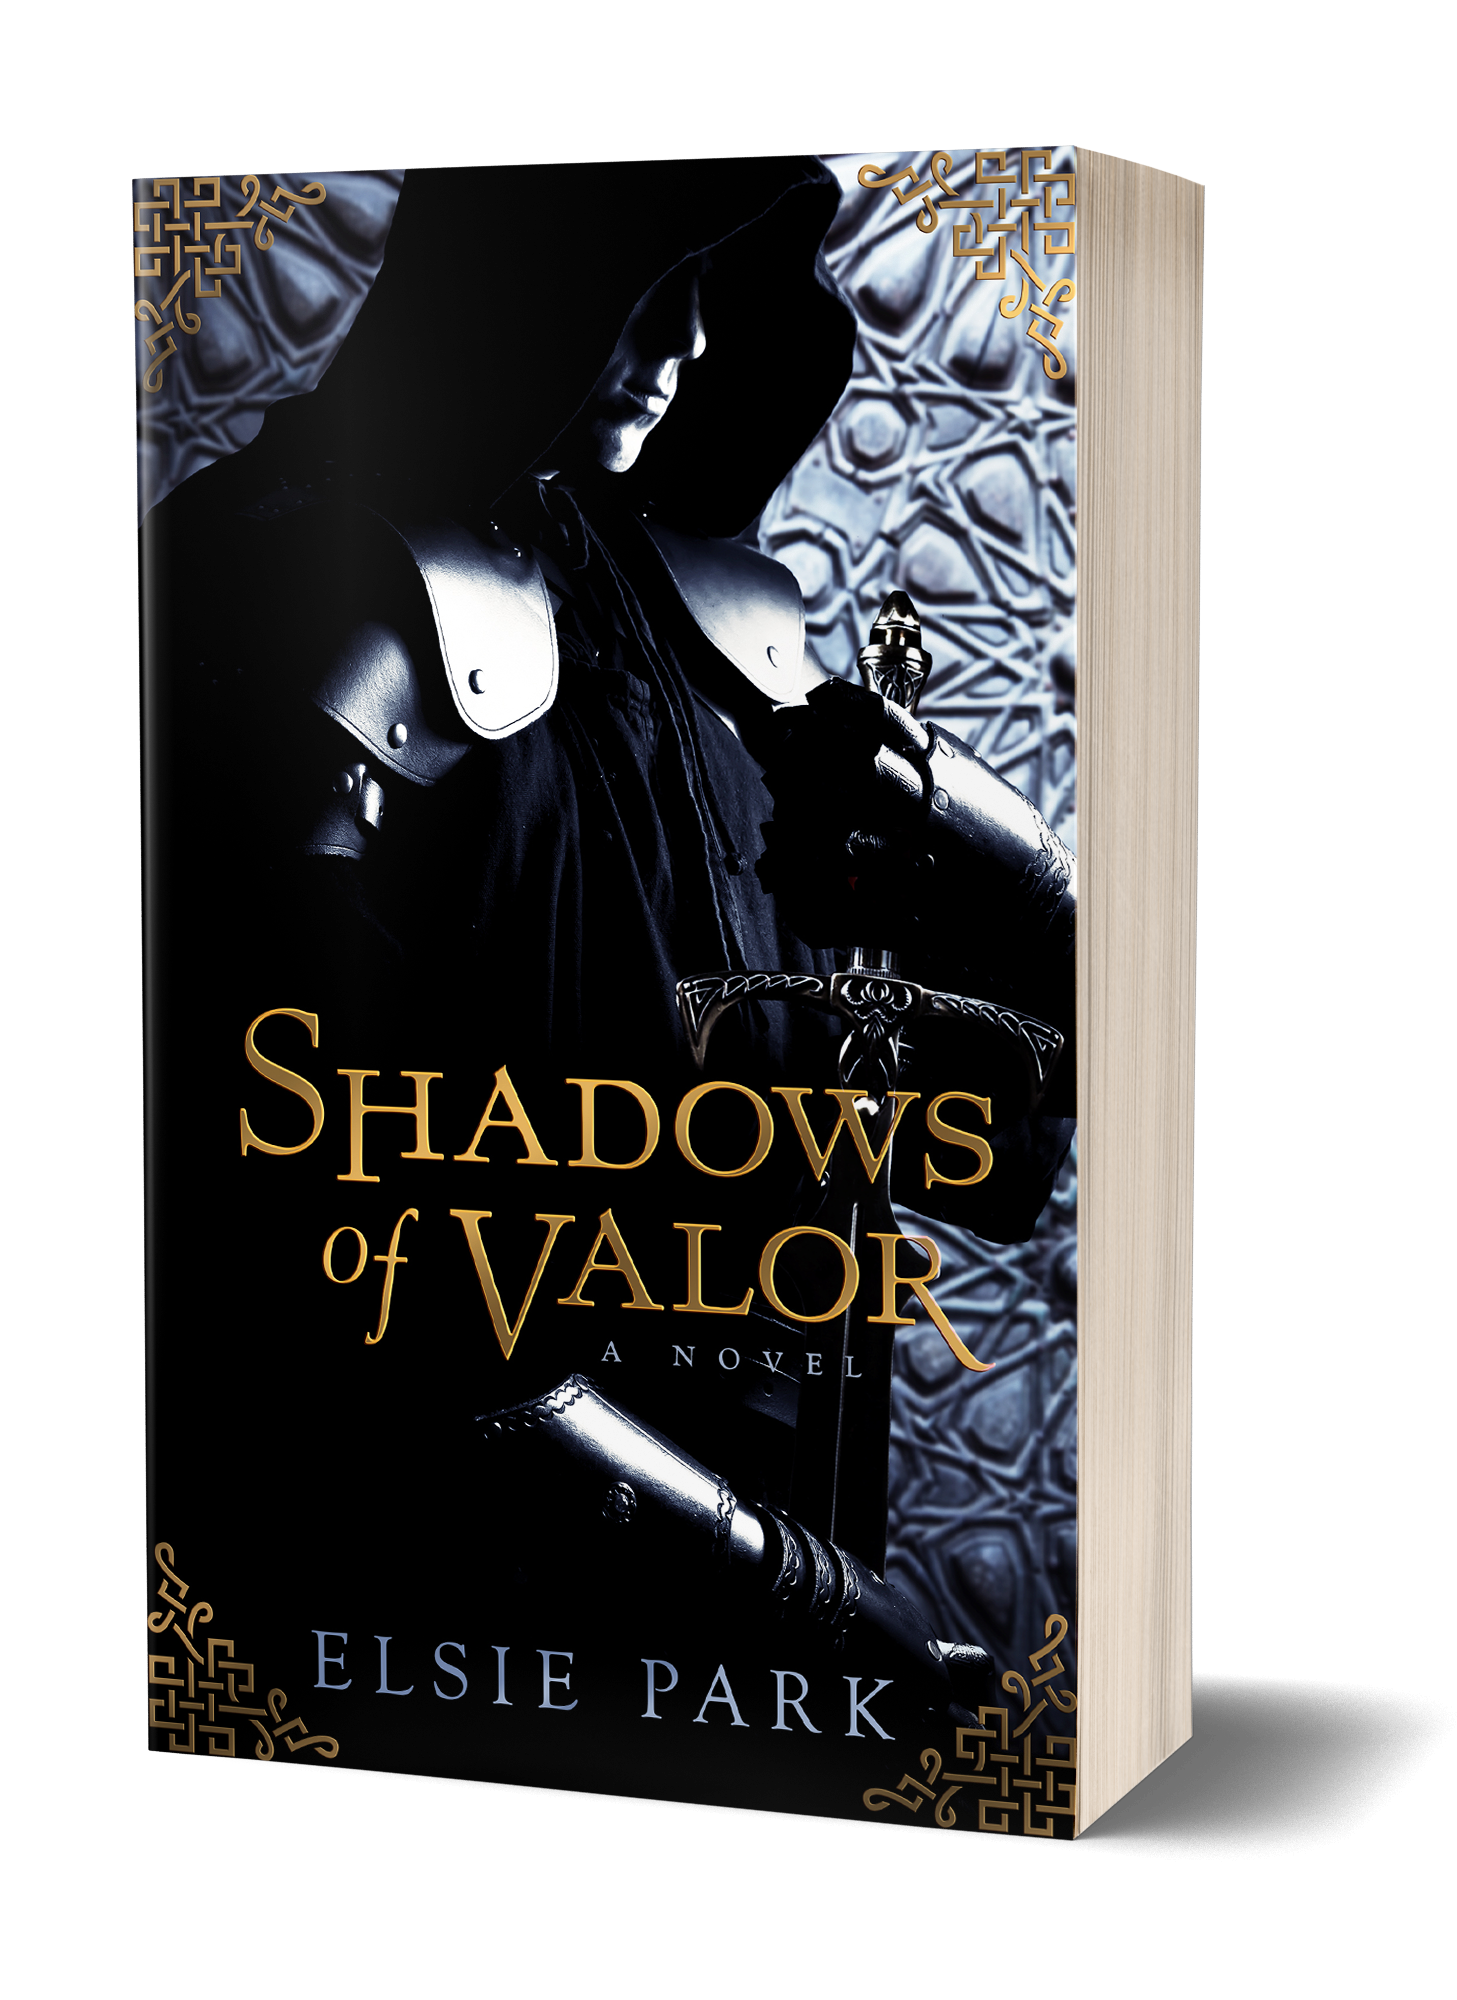 SHADOWS OF VALOR BOOK COVER, MAN SHROUDED IN SHADOWS, IN CLOAK